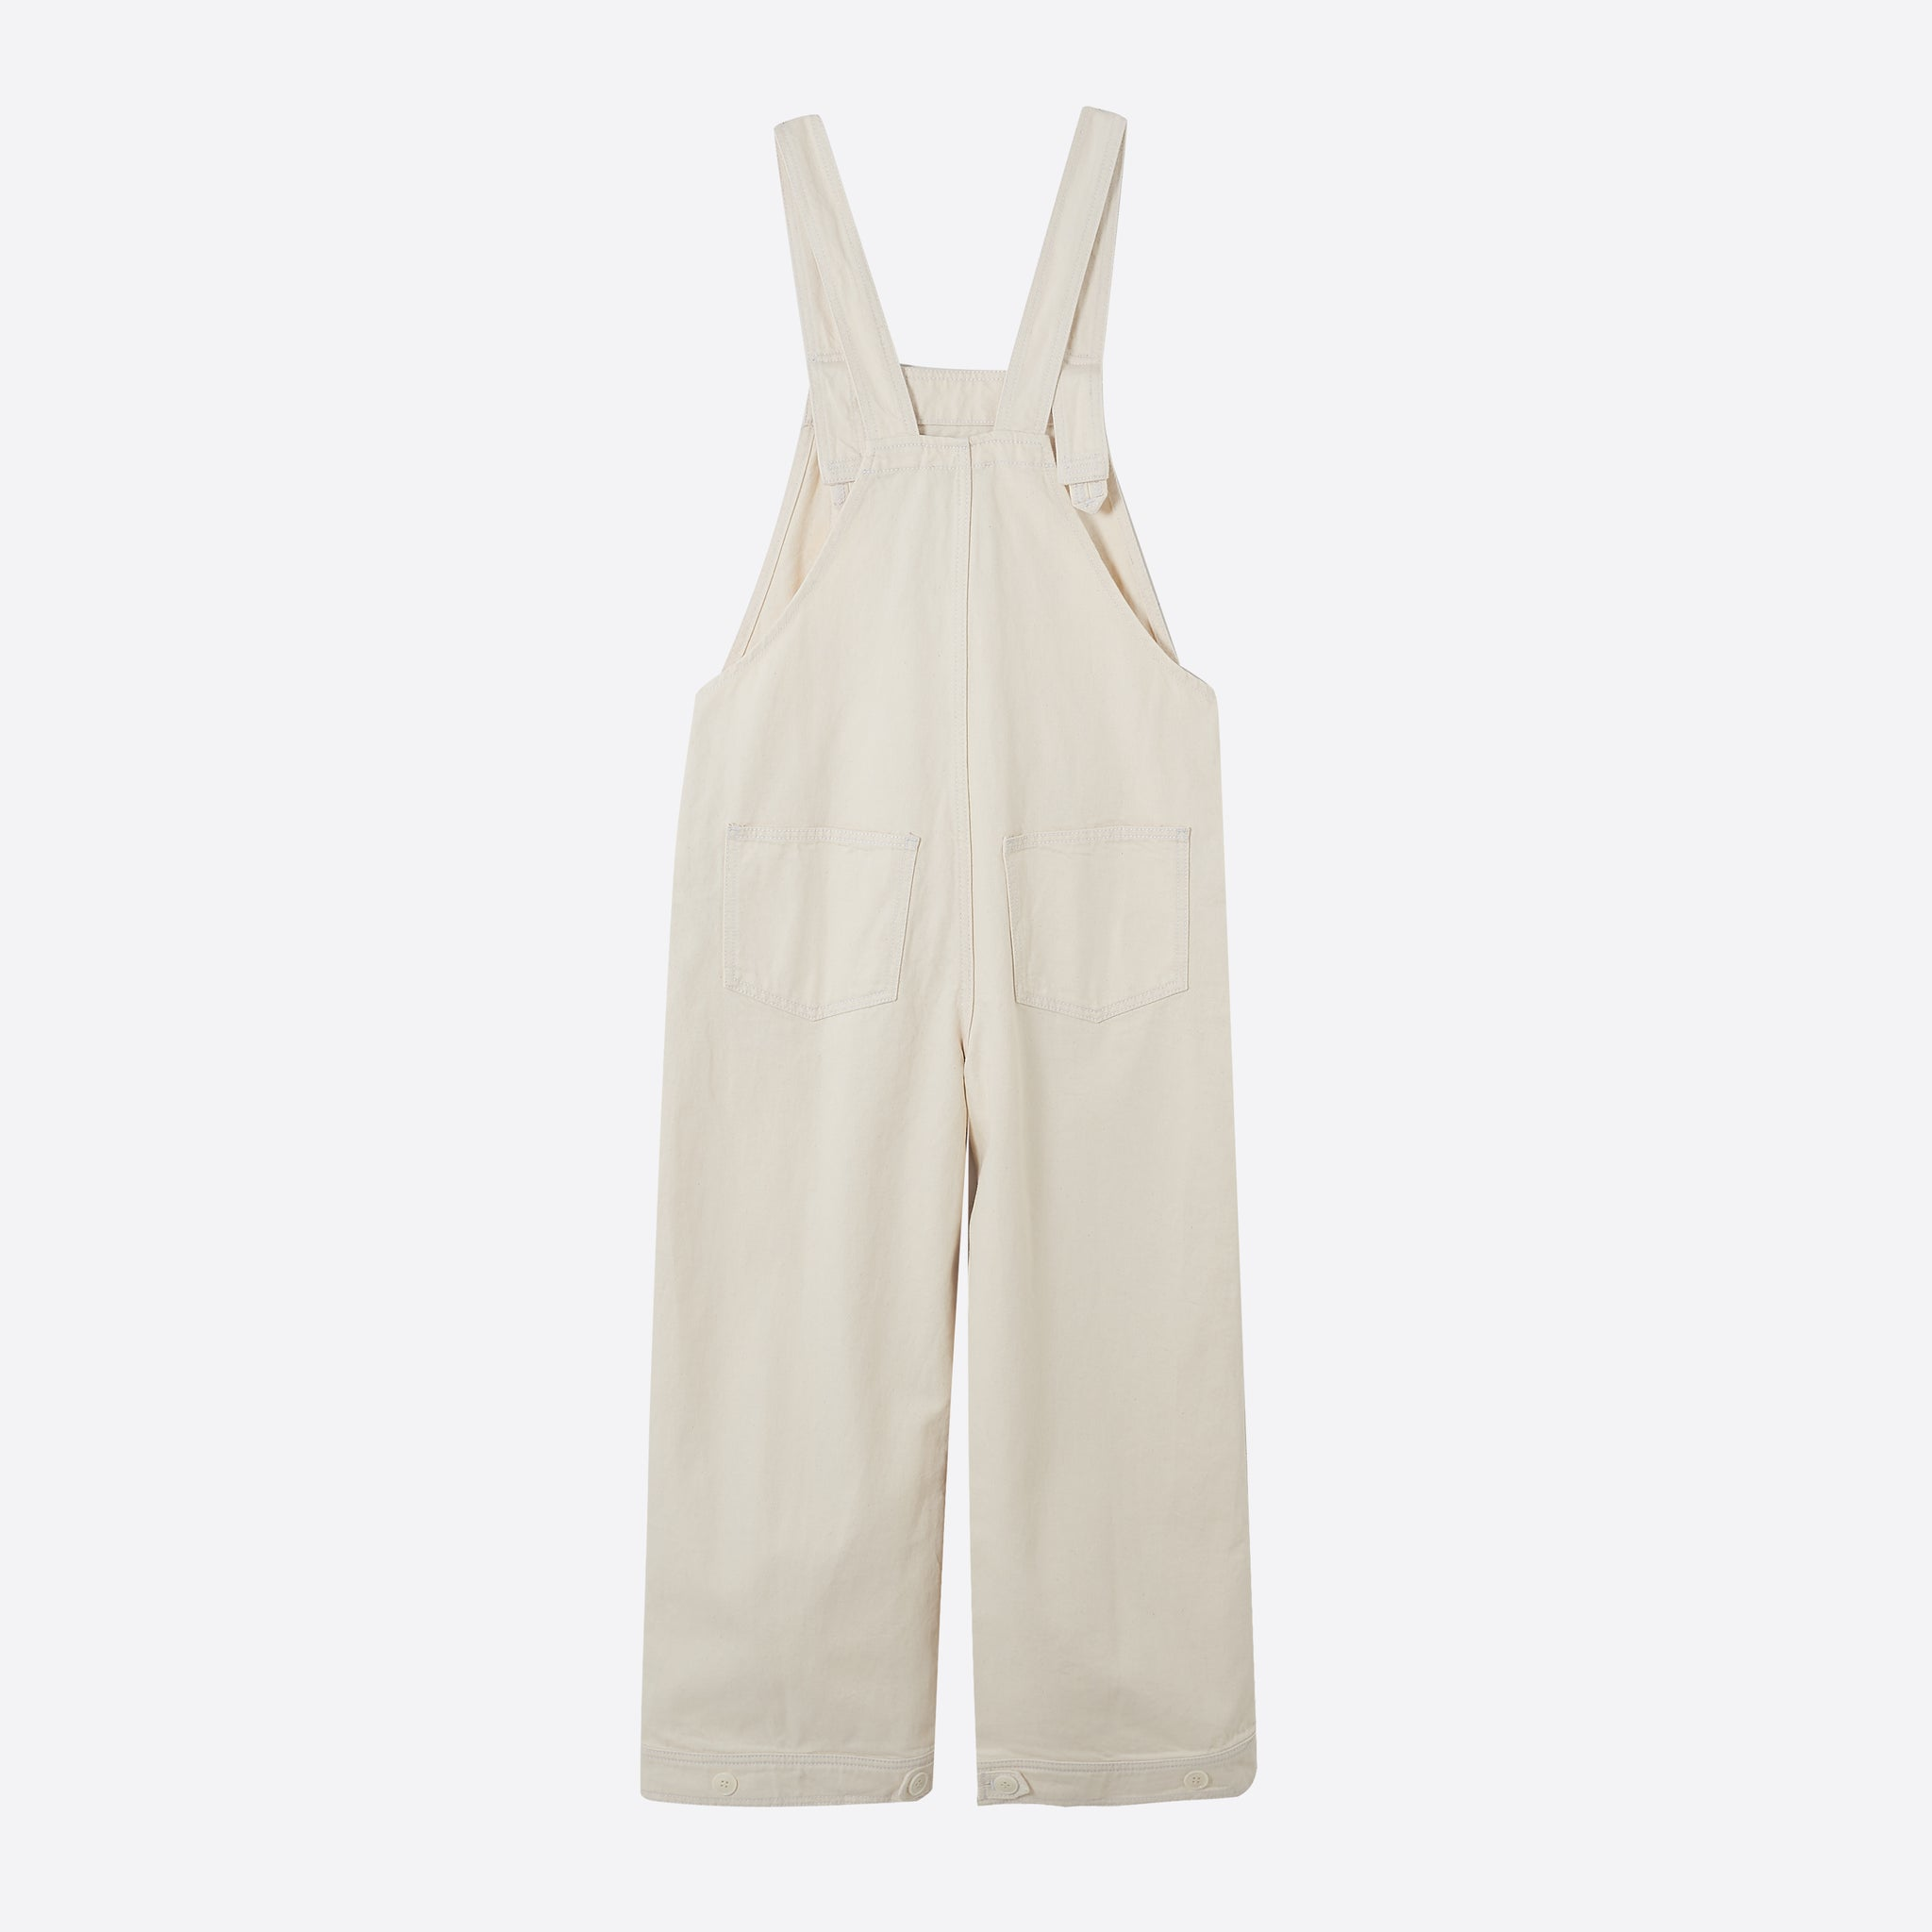 Ganni Bluebell Dungaree in Vanilla Ice